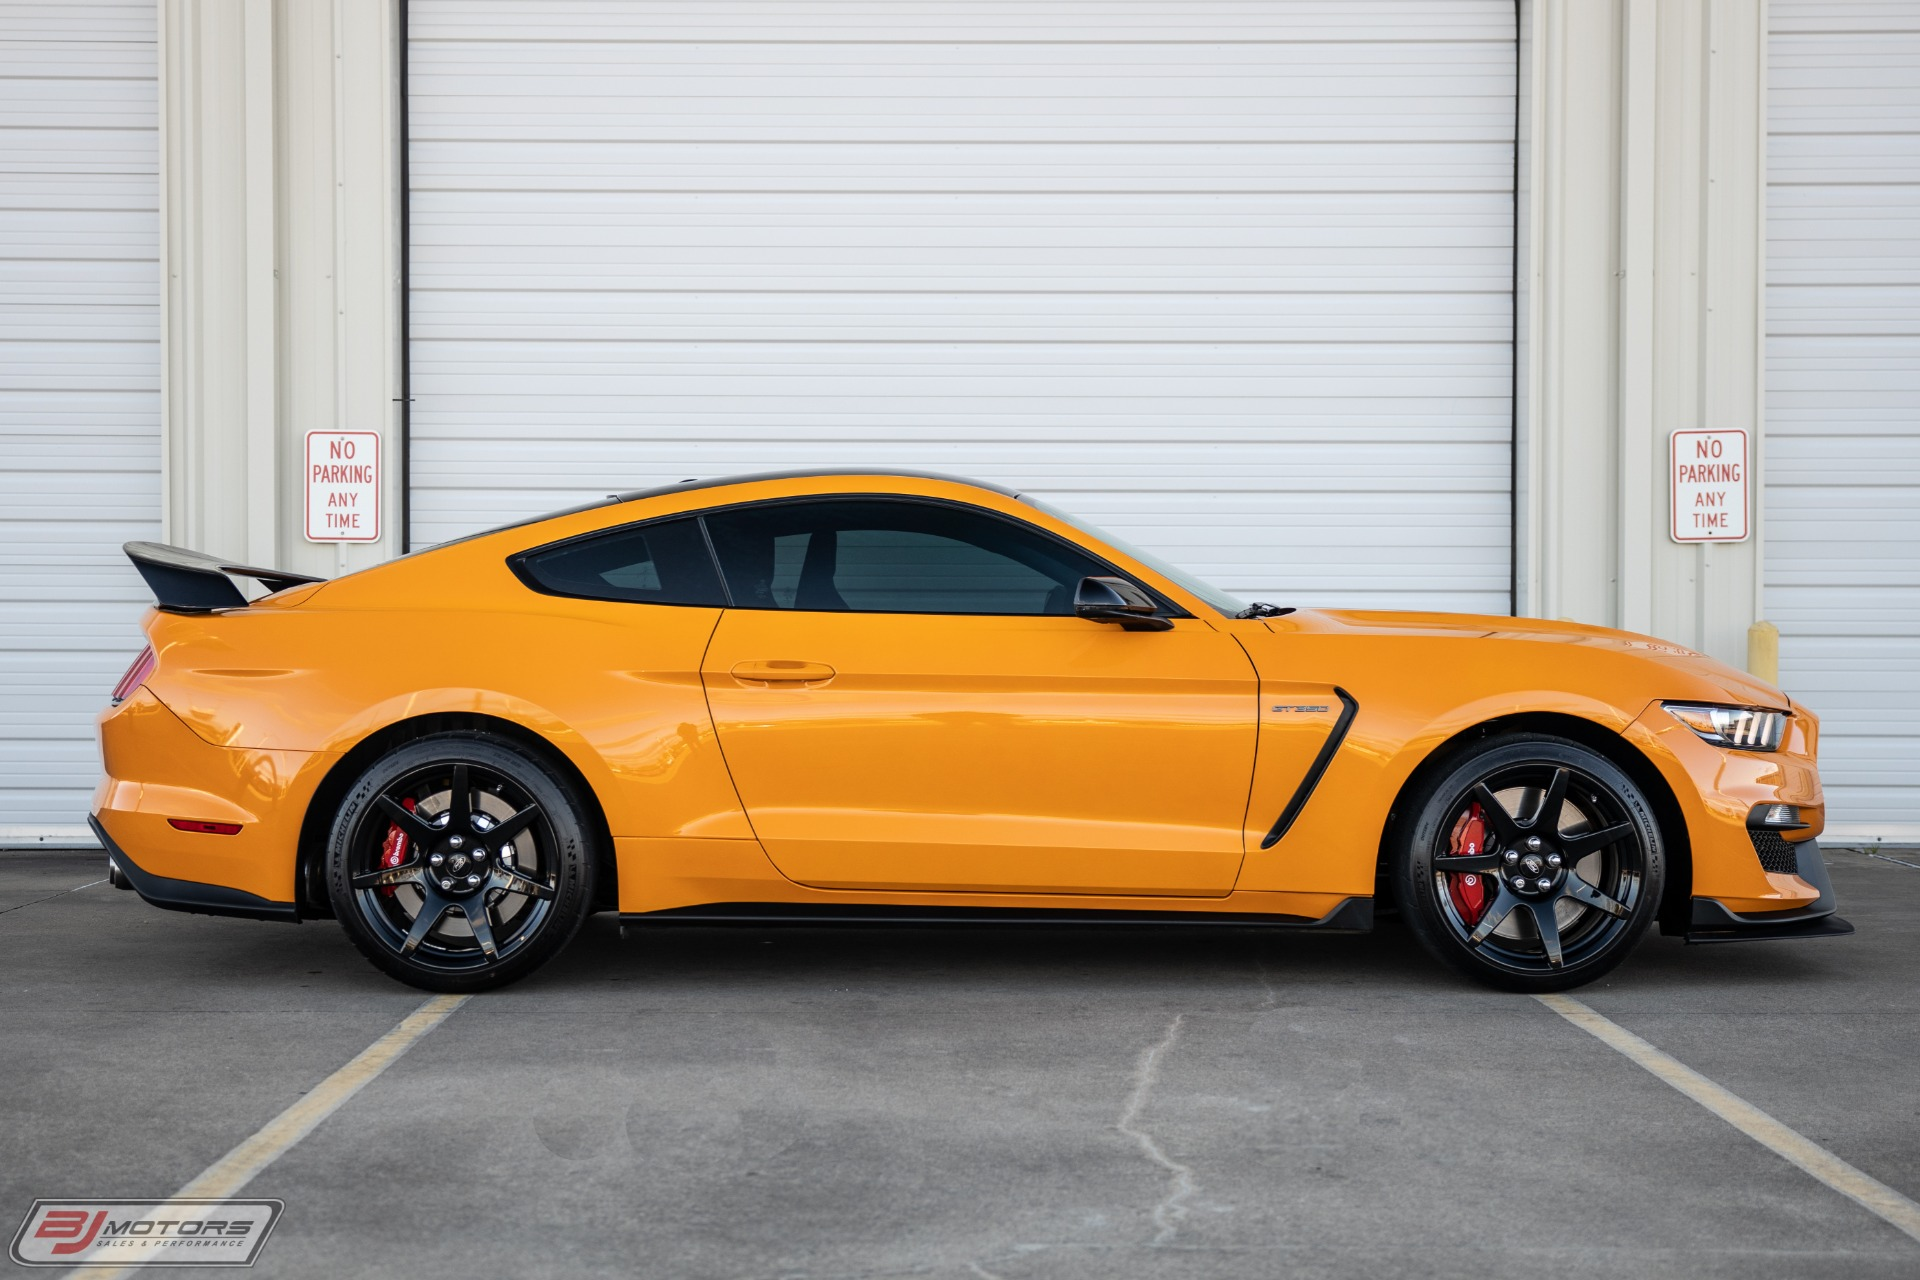 Used-2019-Ford-Mustang-Shelby-GT350R